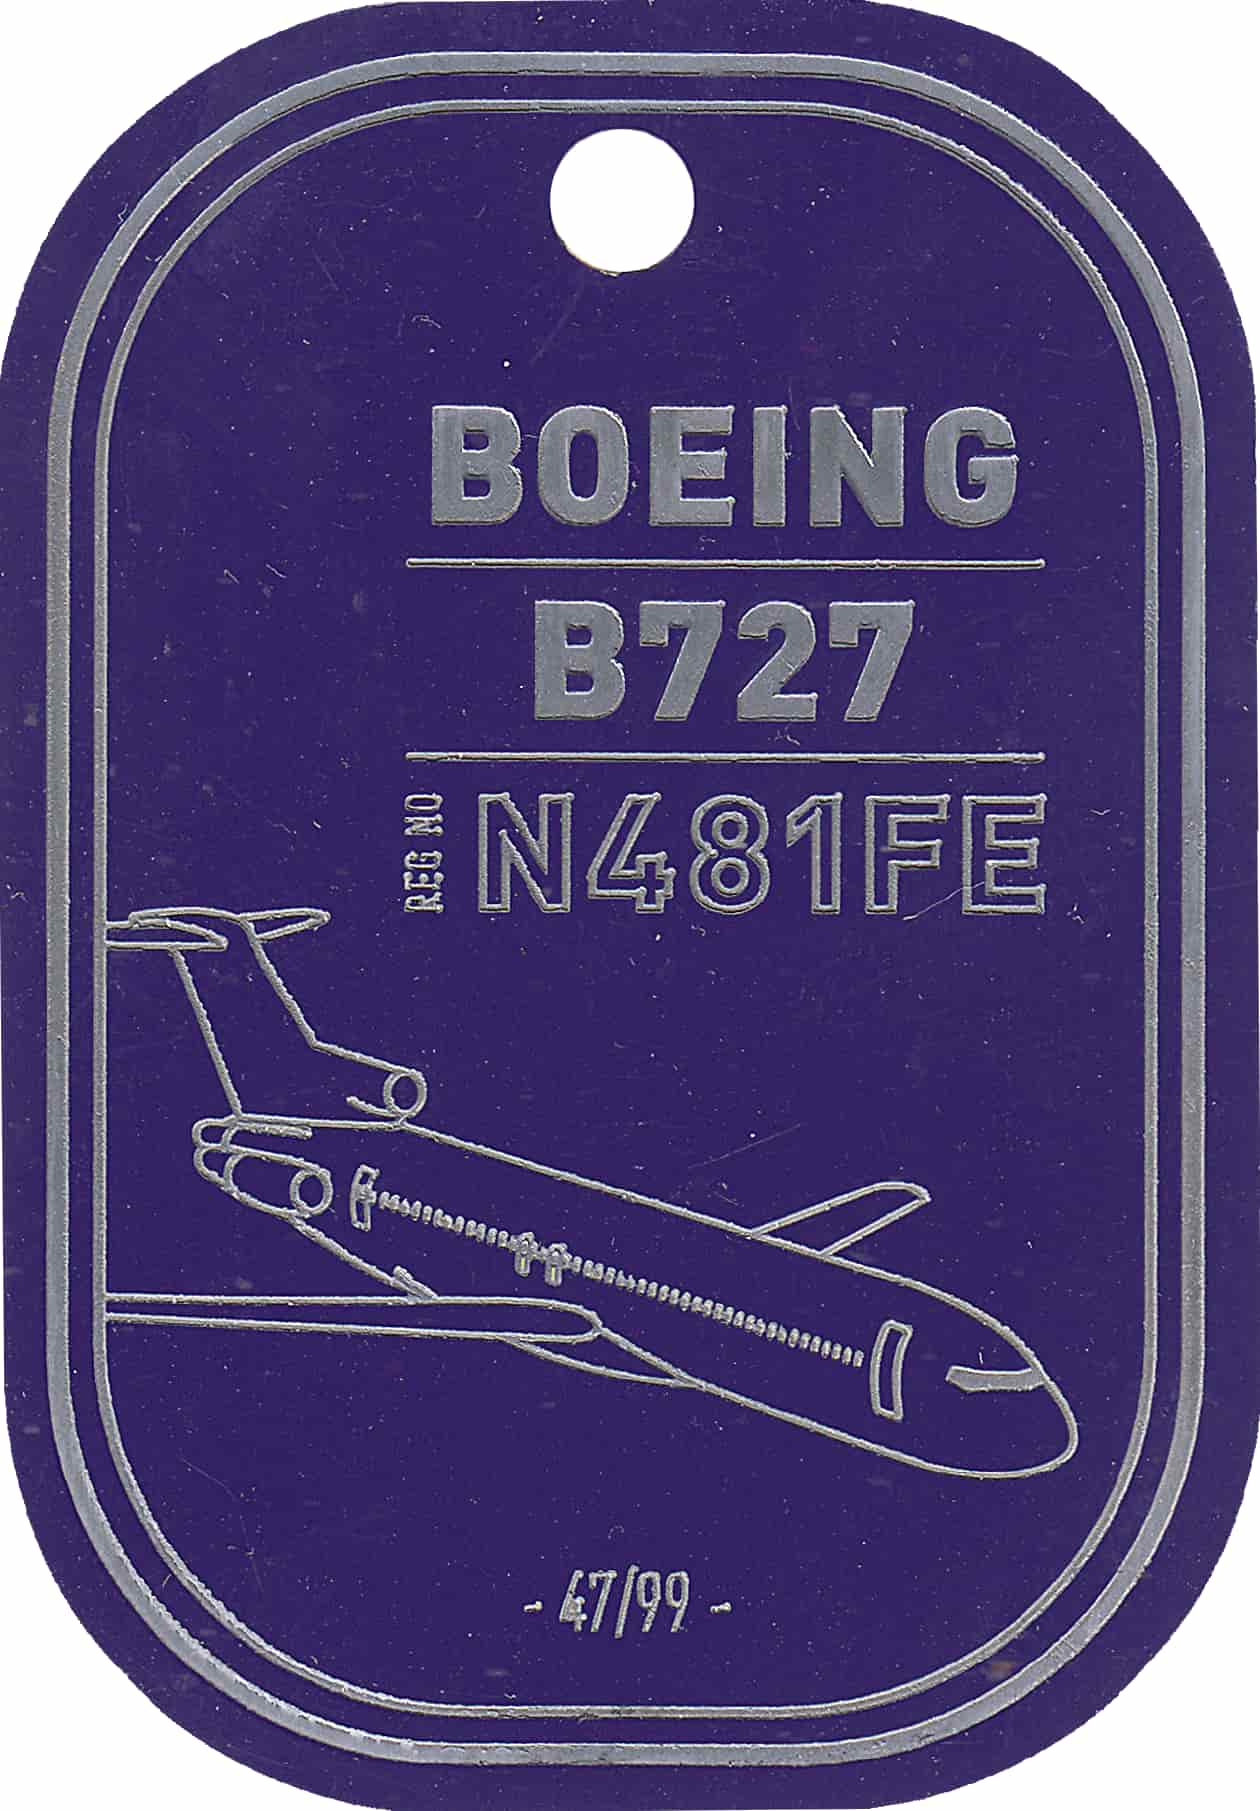 Boeing 727 - Fedex - Purple